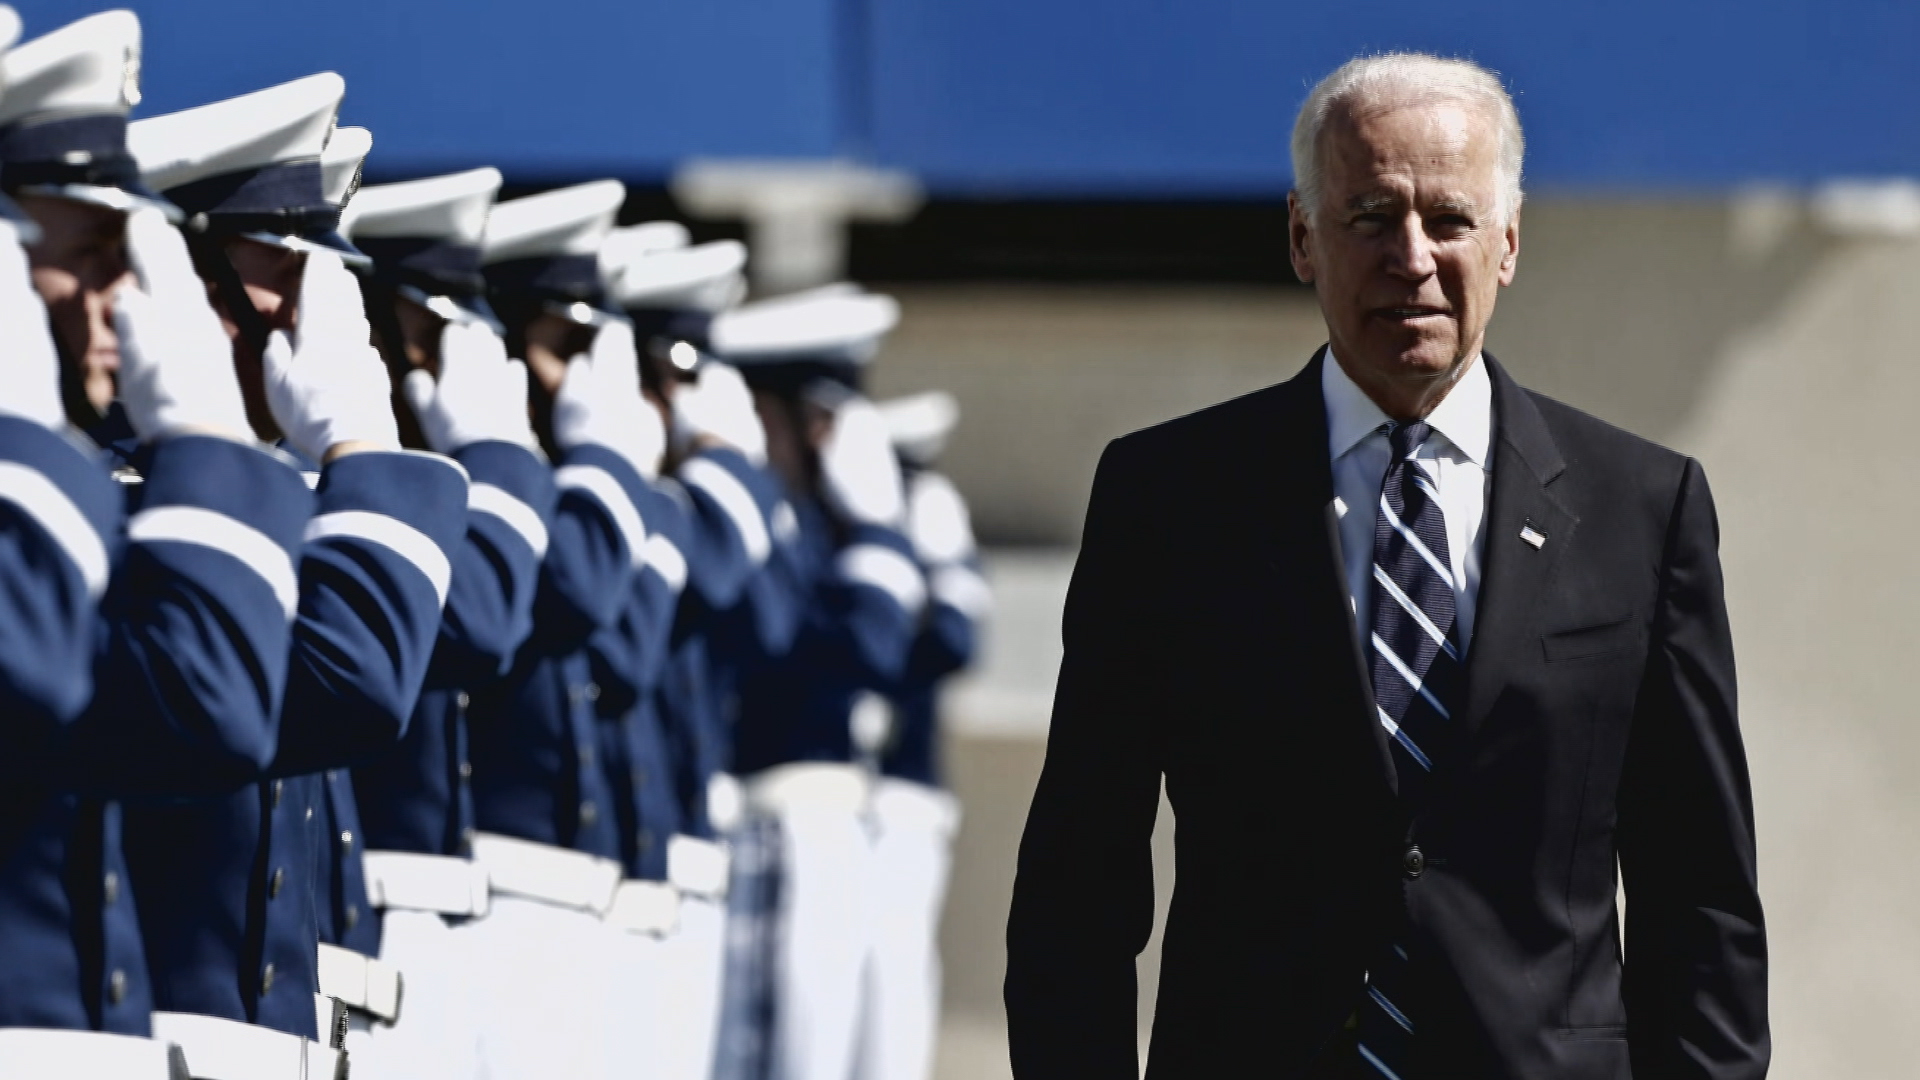 Biden Would Enter 2016 Race As Most Popular Candidate: Poll